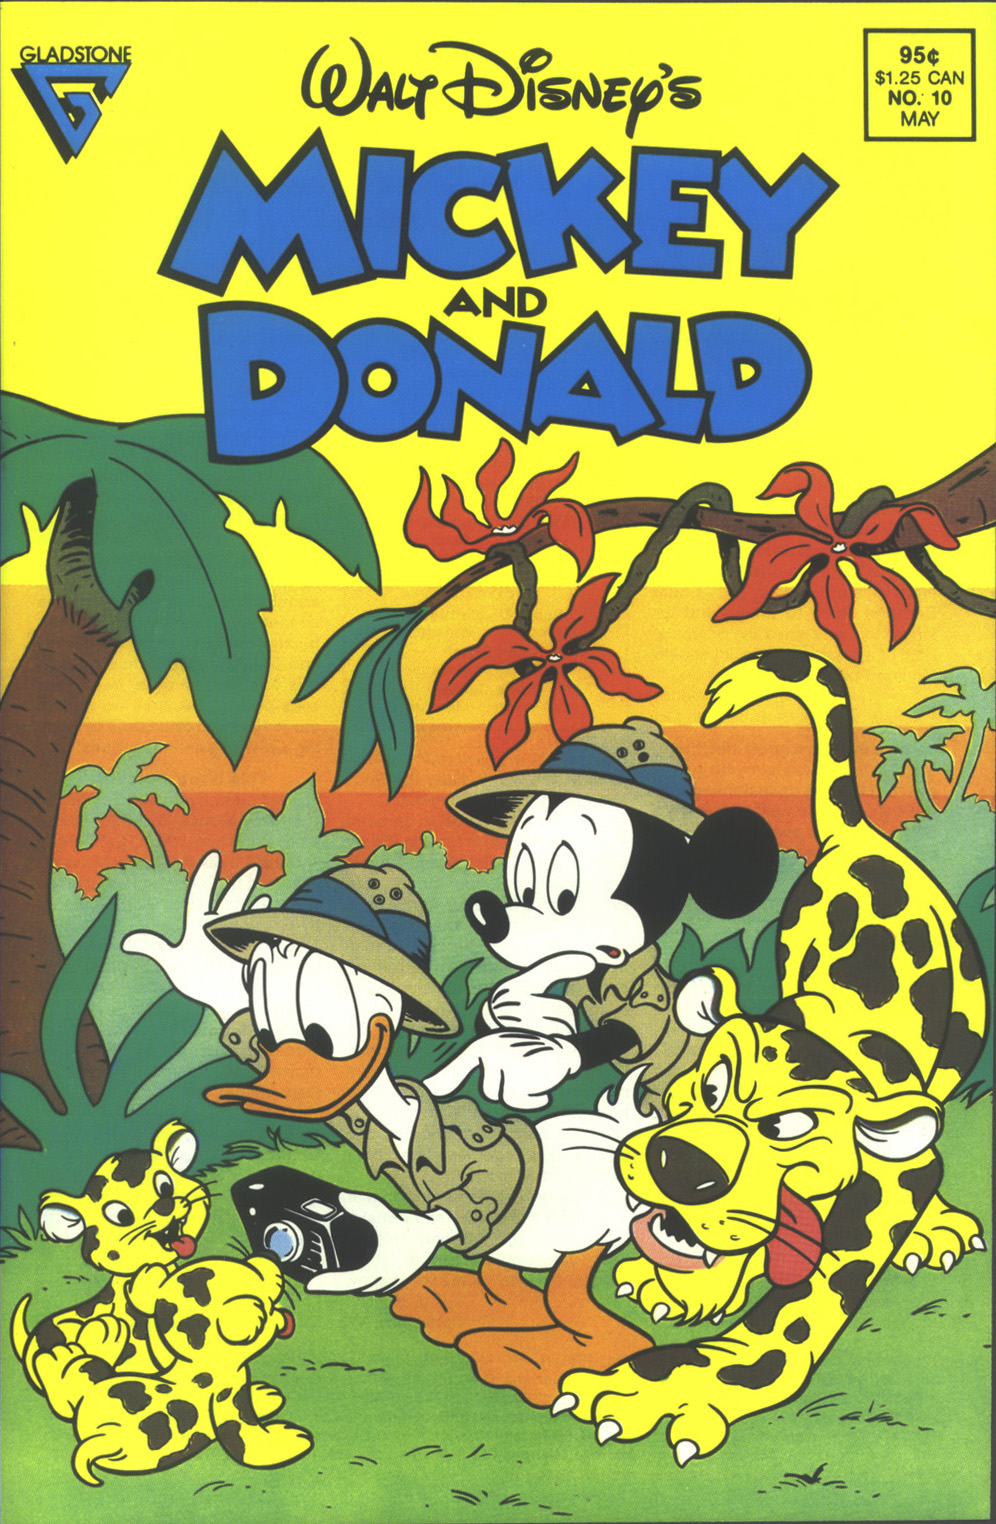 Walt Disneys Mickey and Donald issue 10 - Page 1